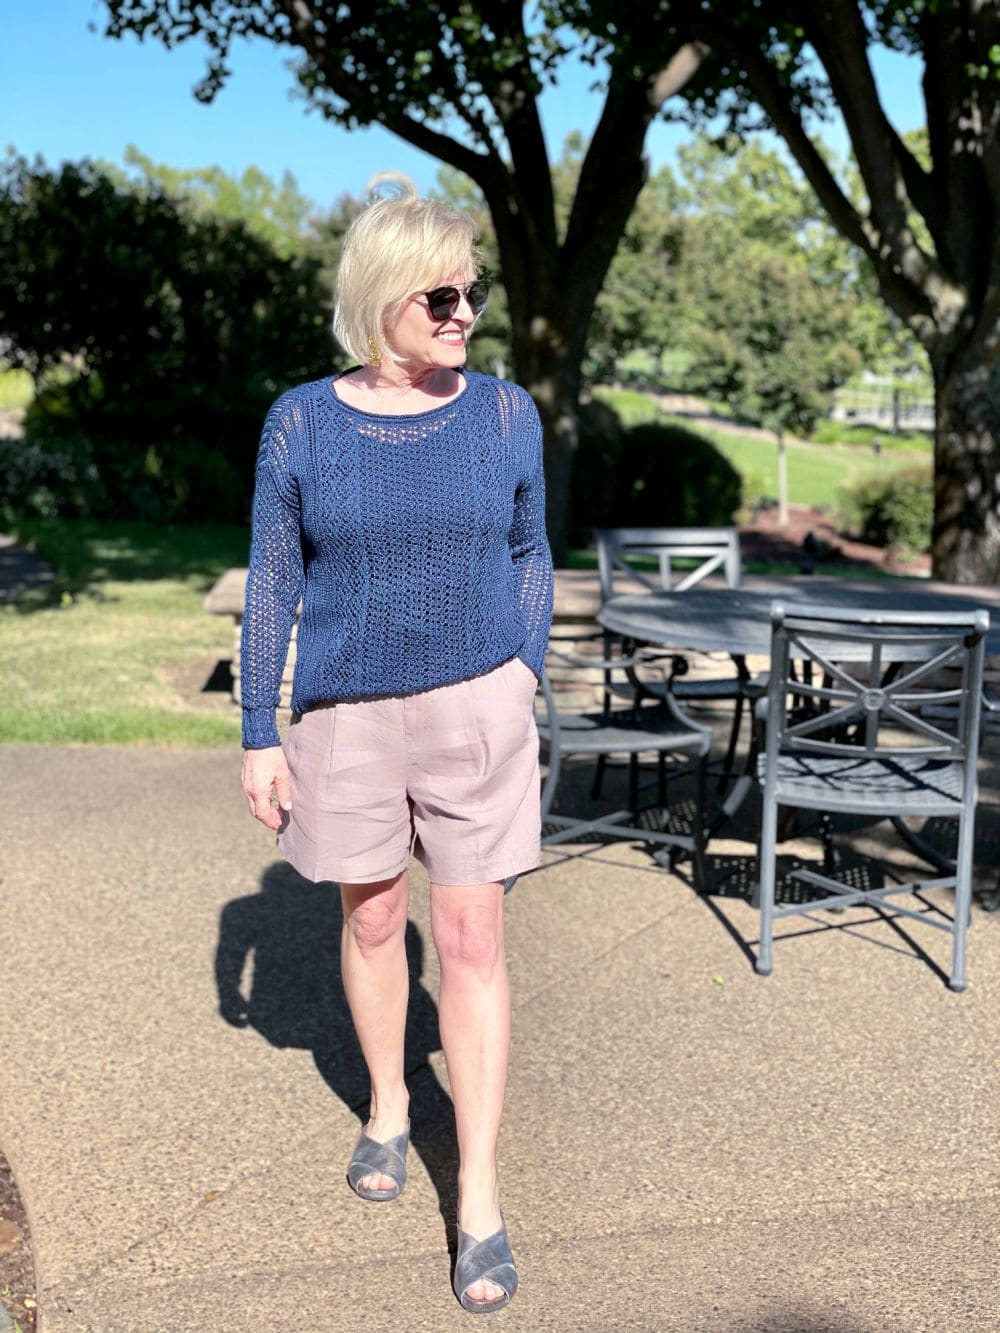 over 50 fashion blogger wearing open knit sweater and long line shorts